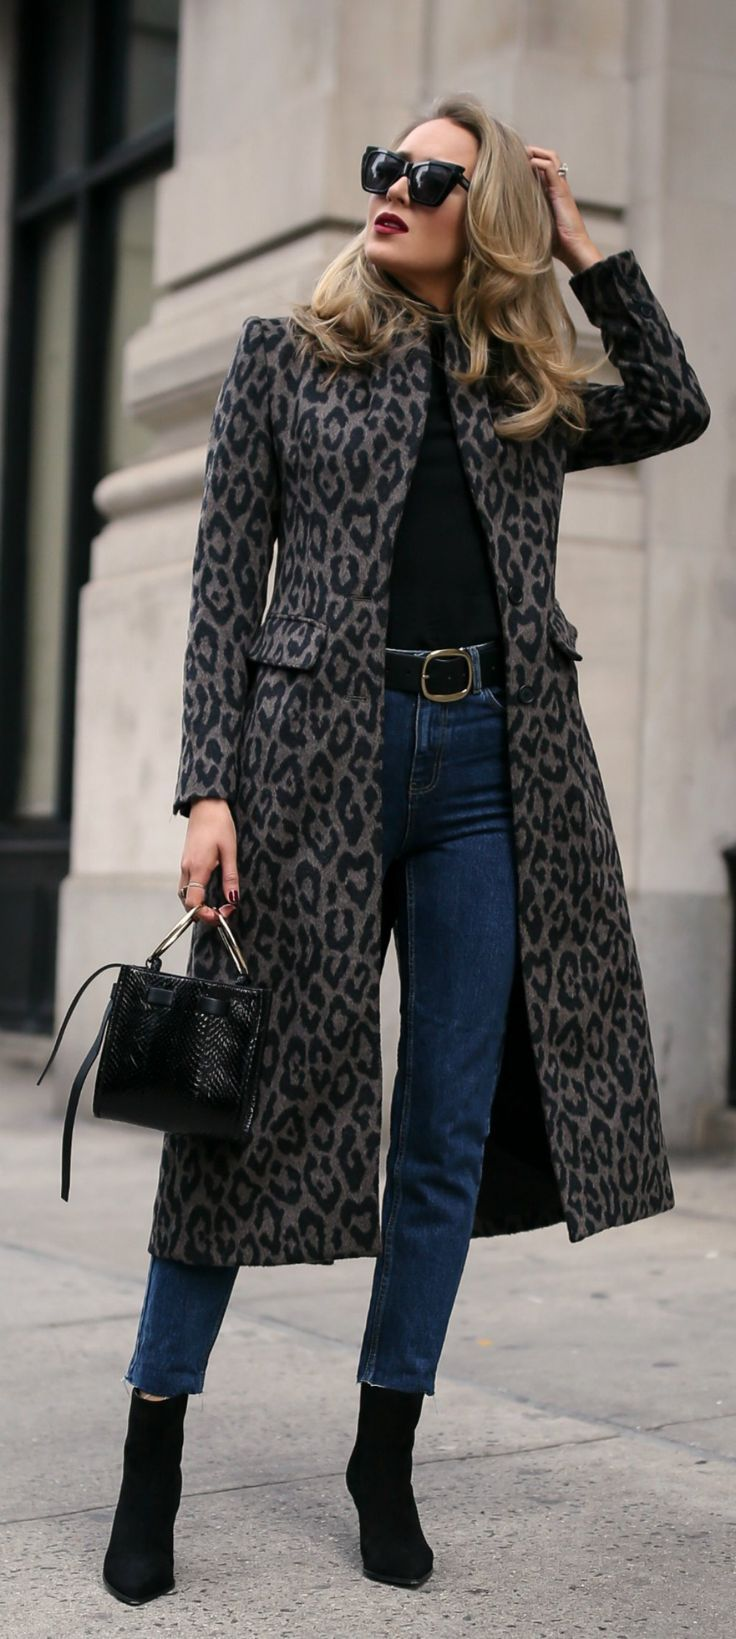 Best Black Booties 2019 Best black bootie styled two ways! // Long black and grey leopard